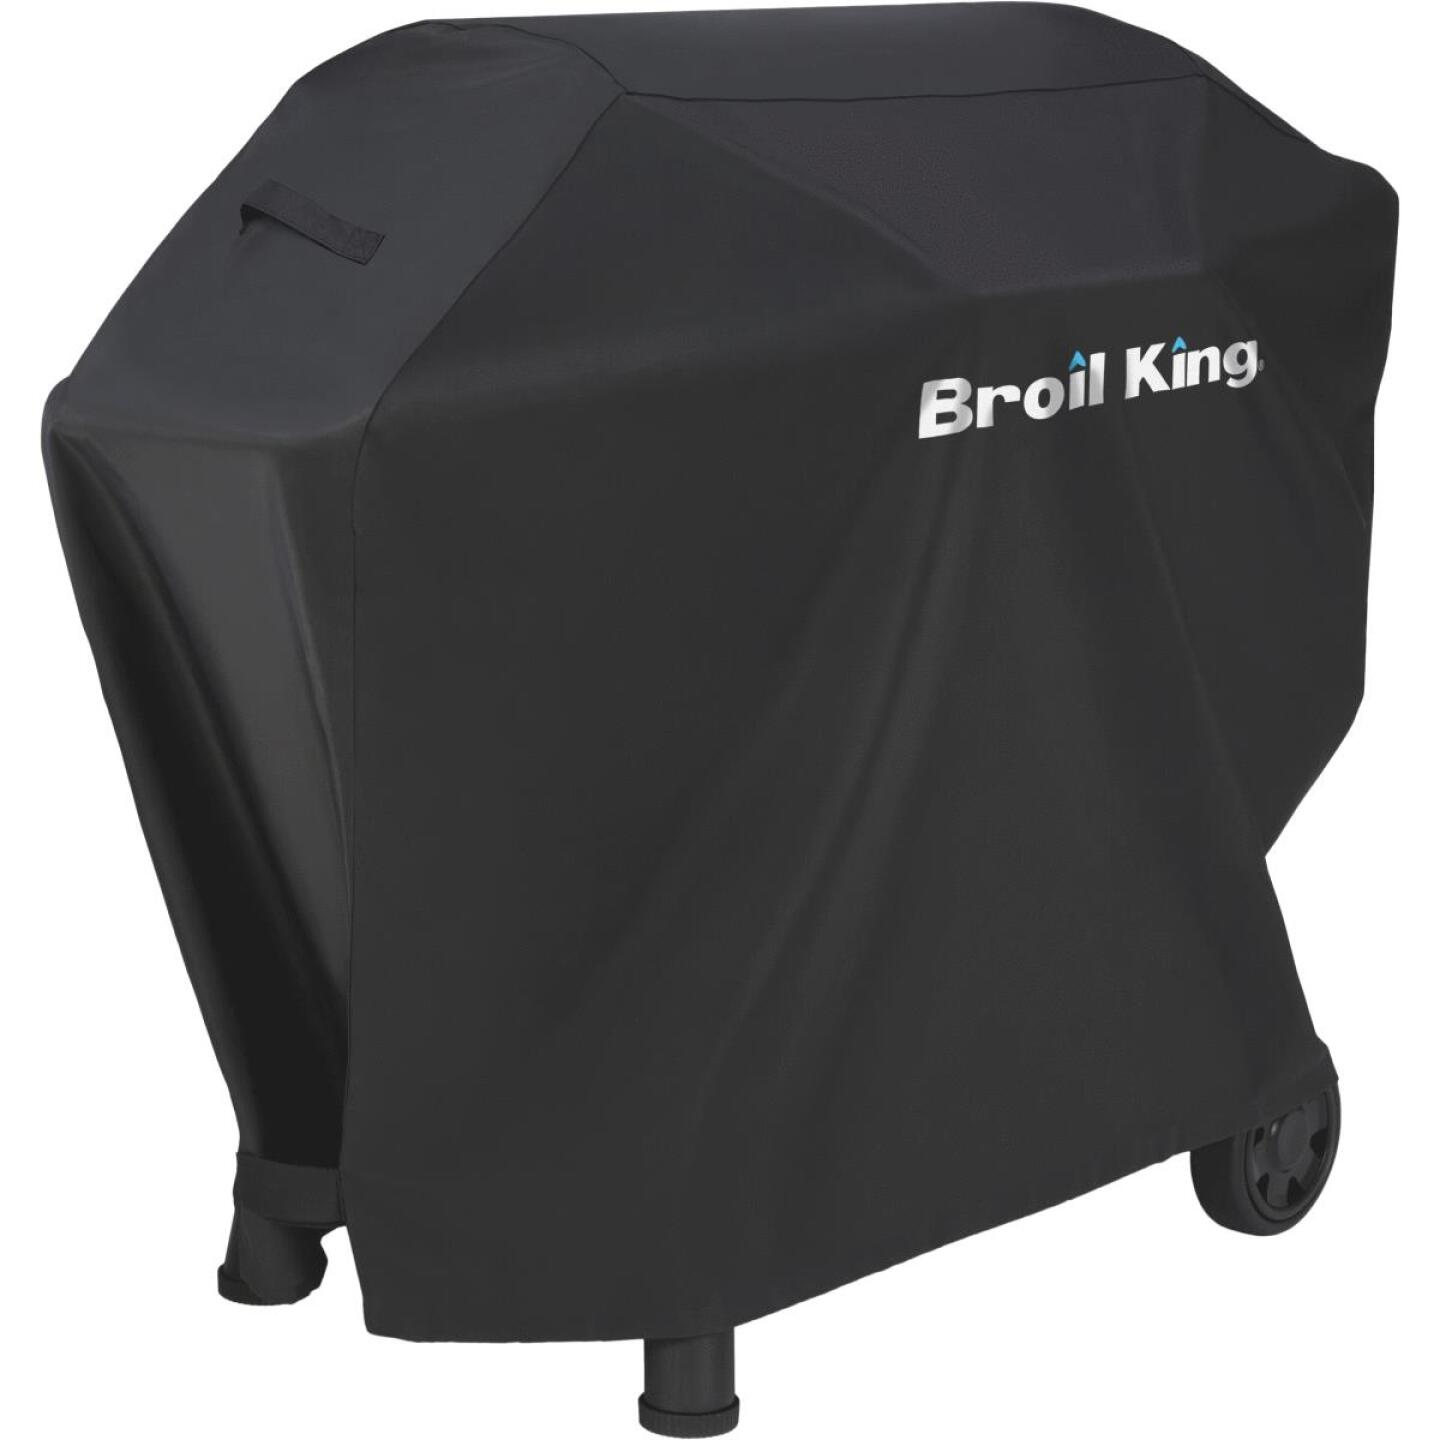 Broil King Baron Pellet 500 49 In. Black Grill Cover Image 3